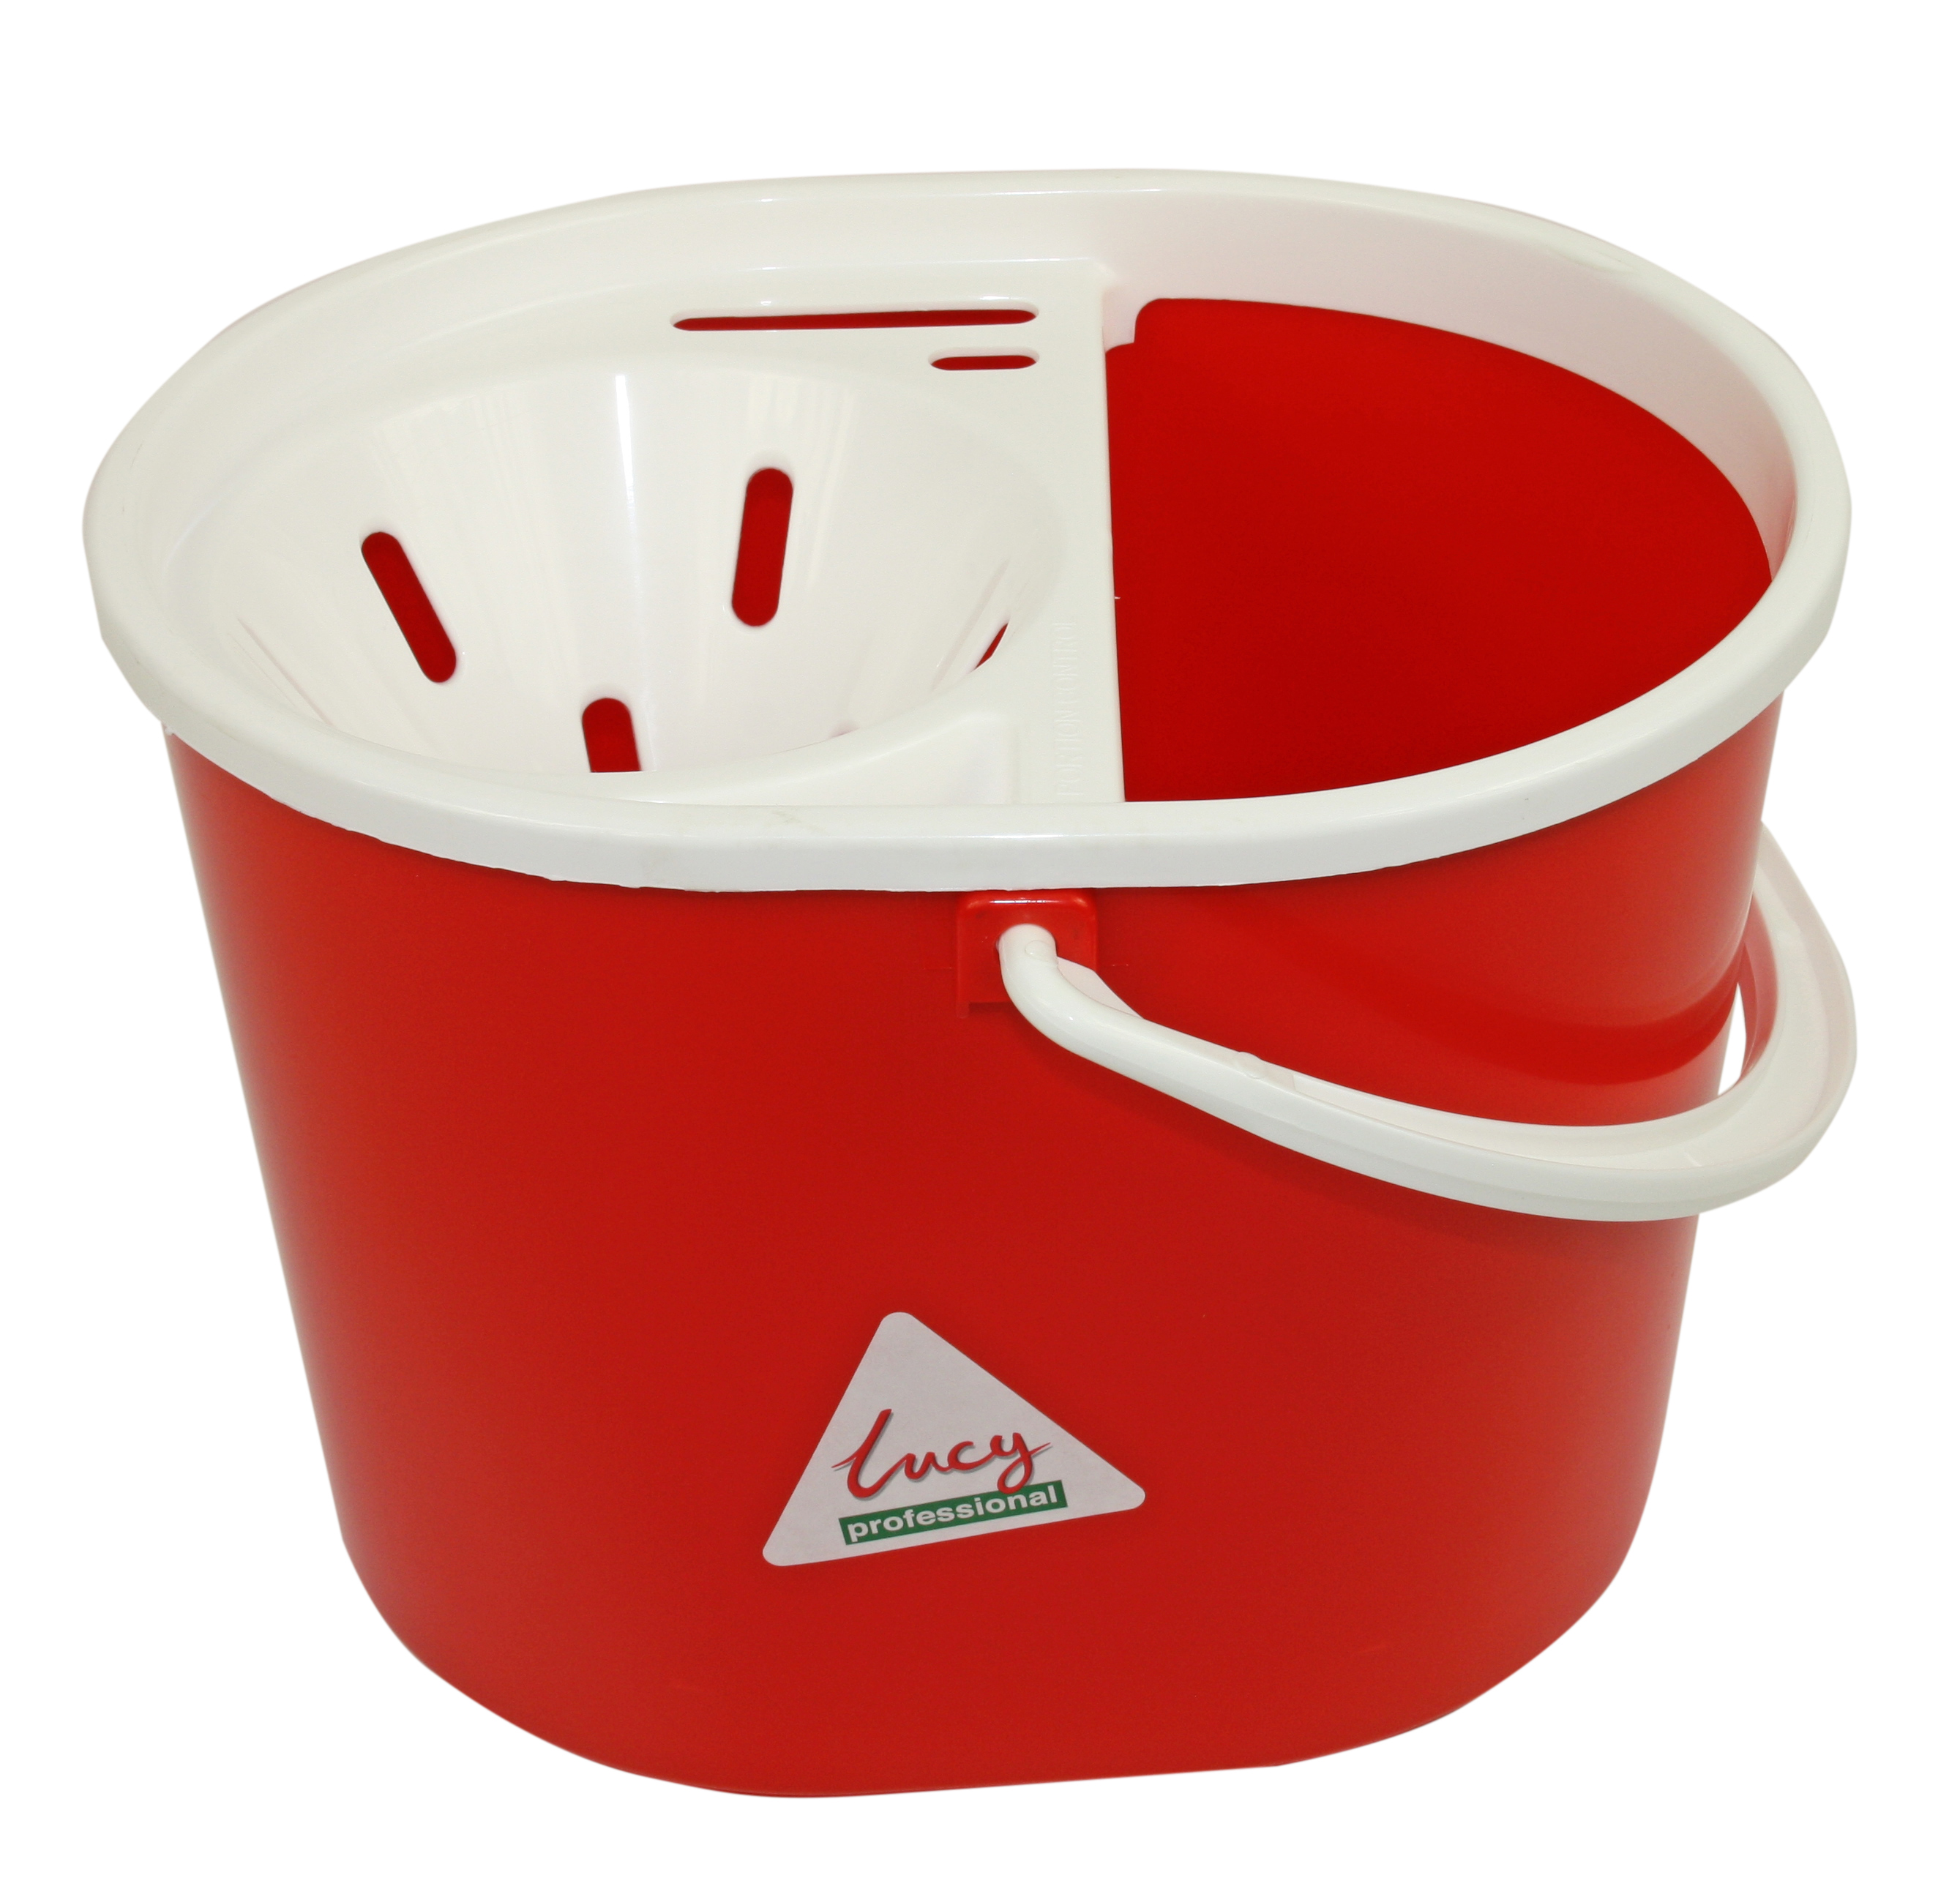 Bucket Mop Lucy Do-It-All 15Lt With Wringer 1405291 (Red)